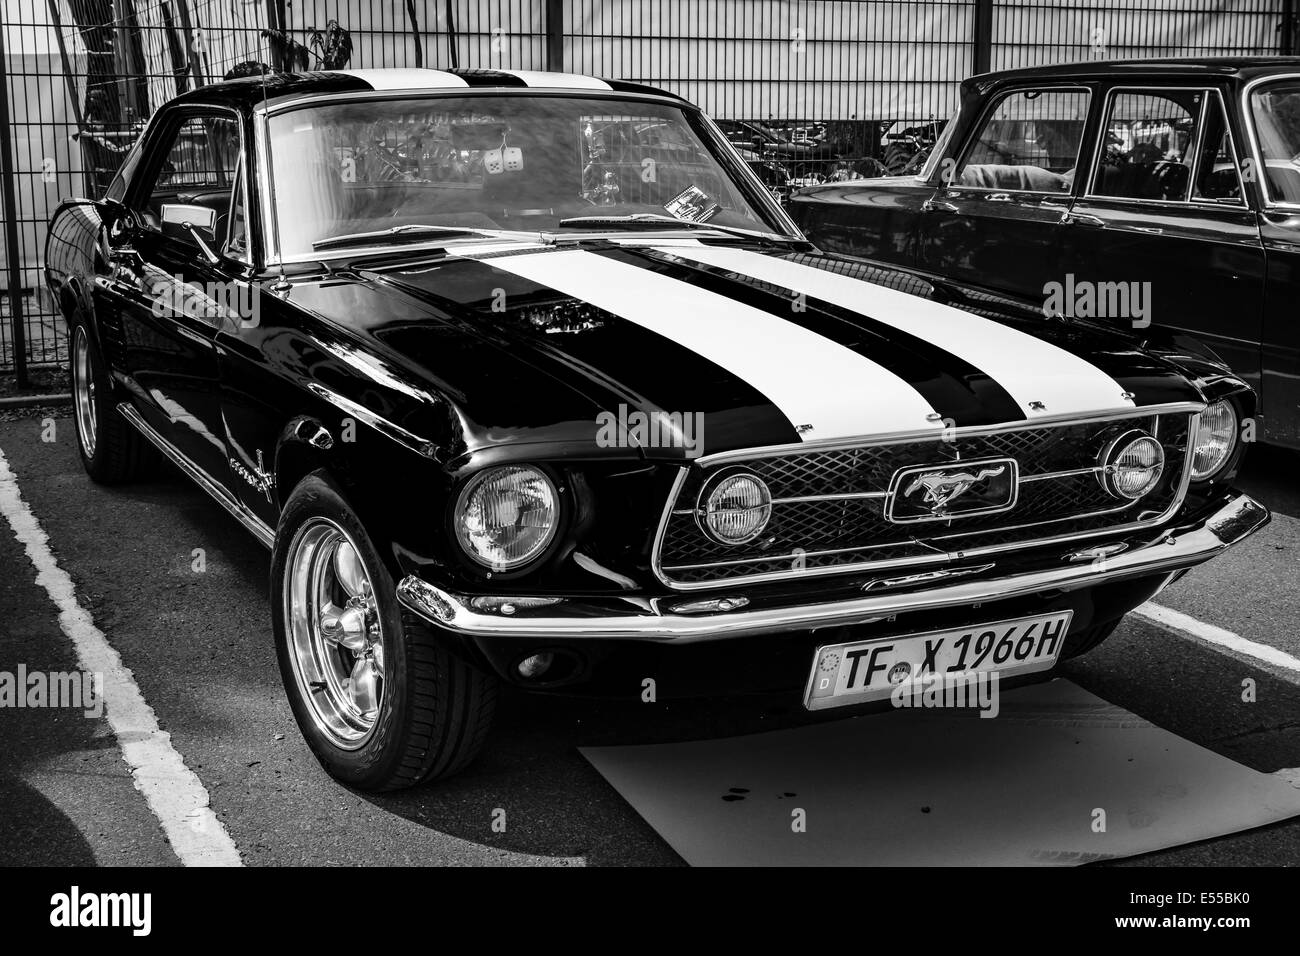 Pony Car Ford Mustang Gt First Generation Black And White 27th